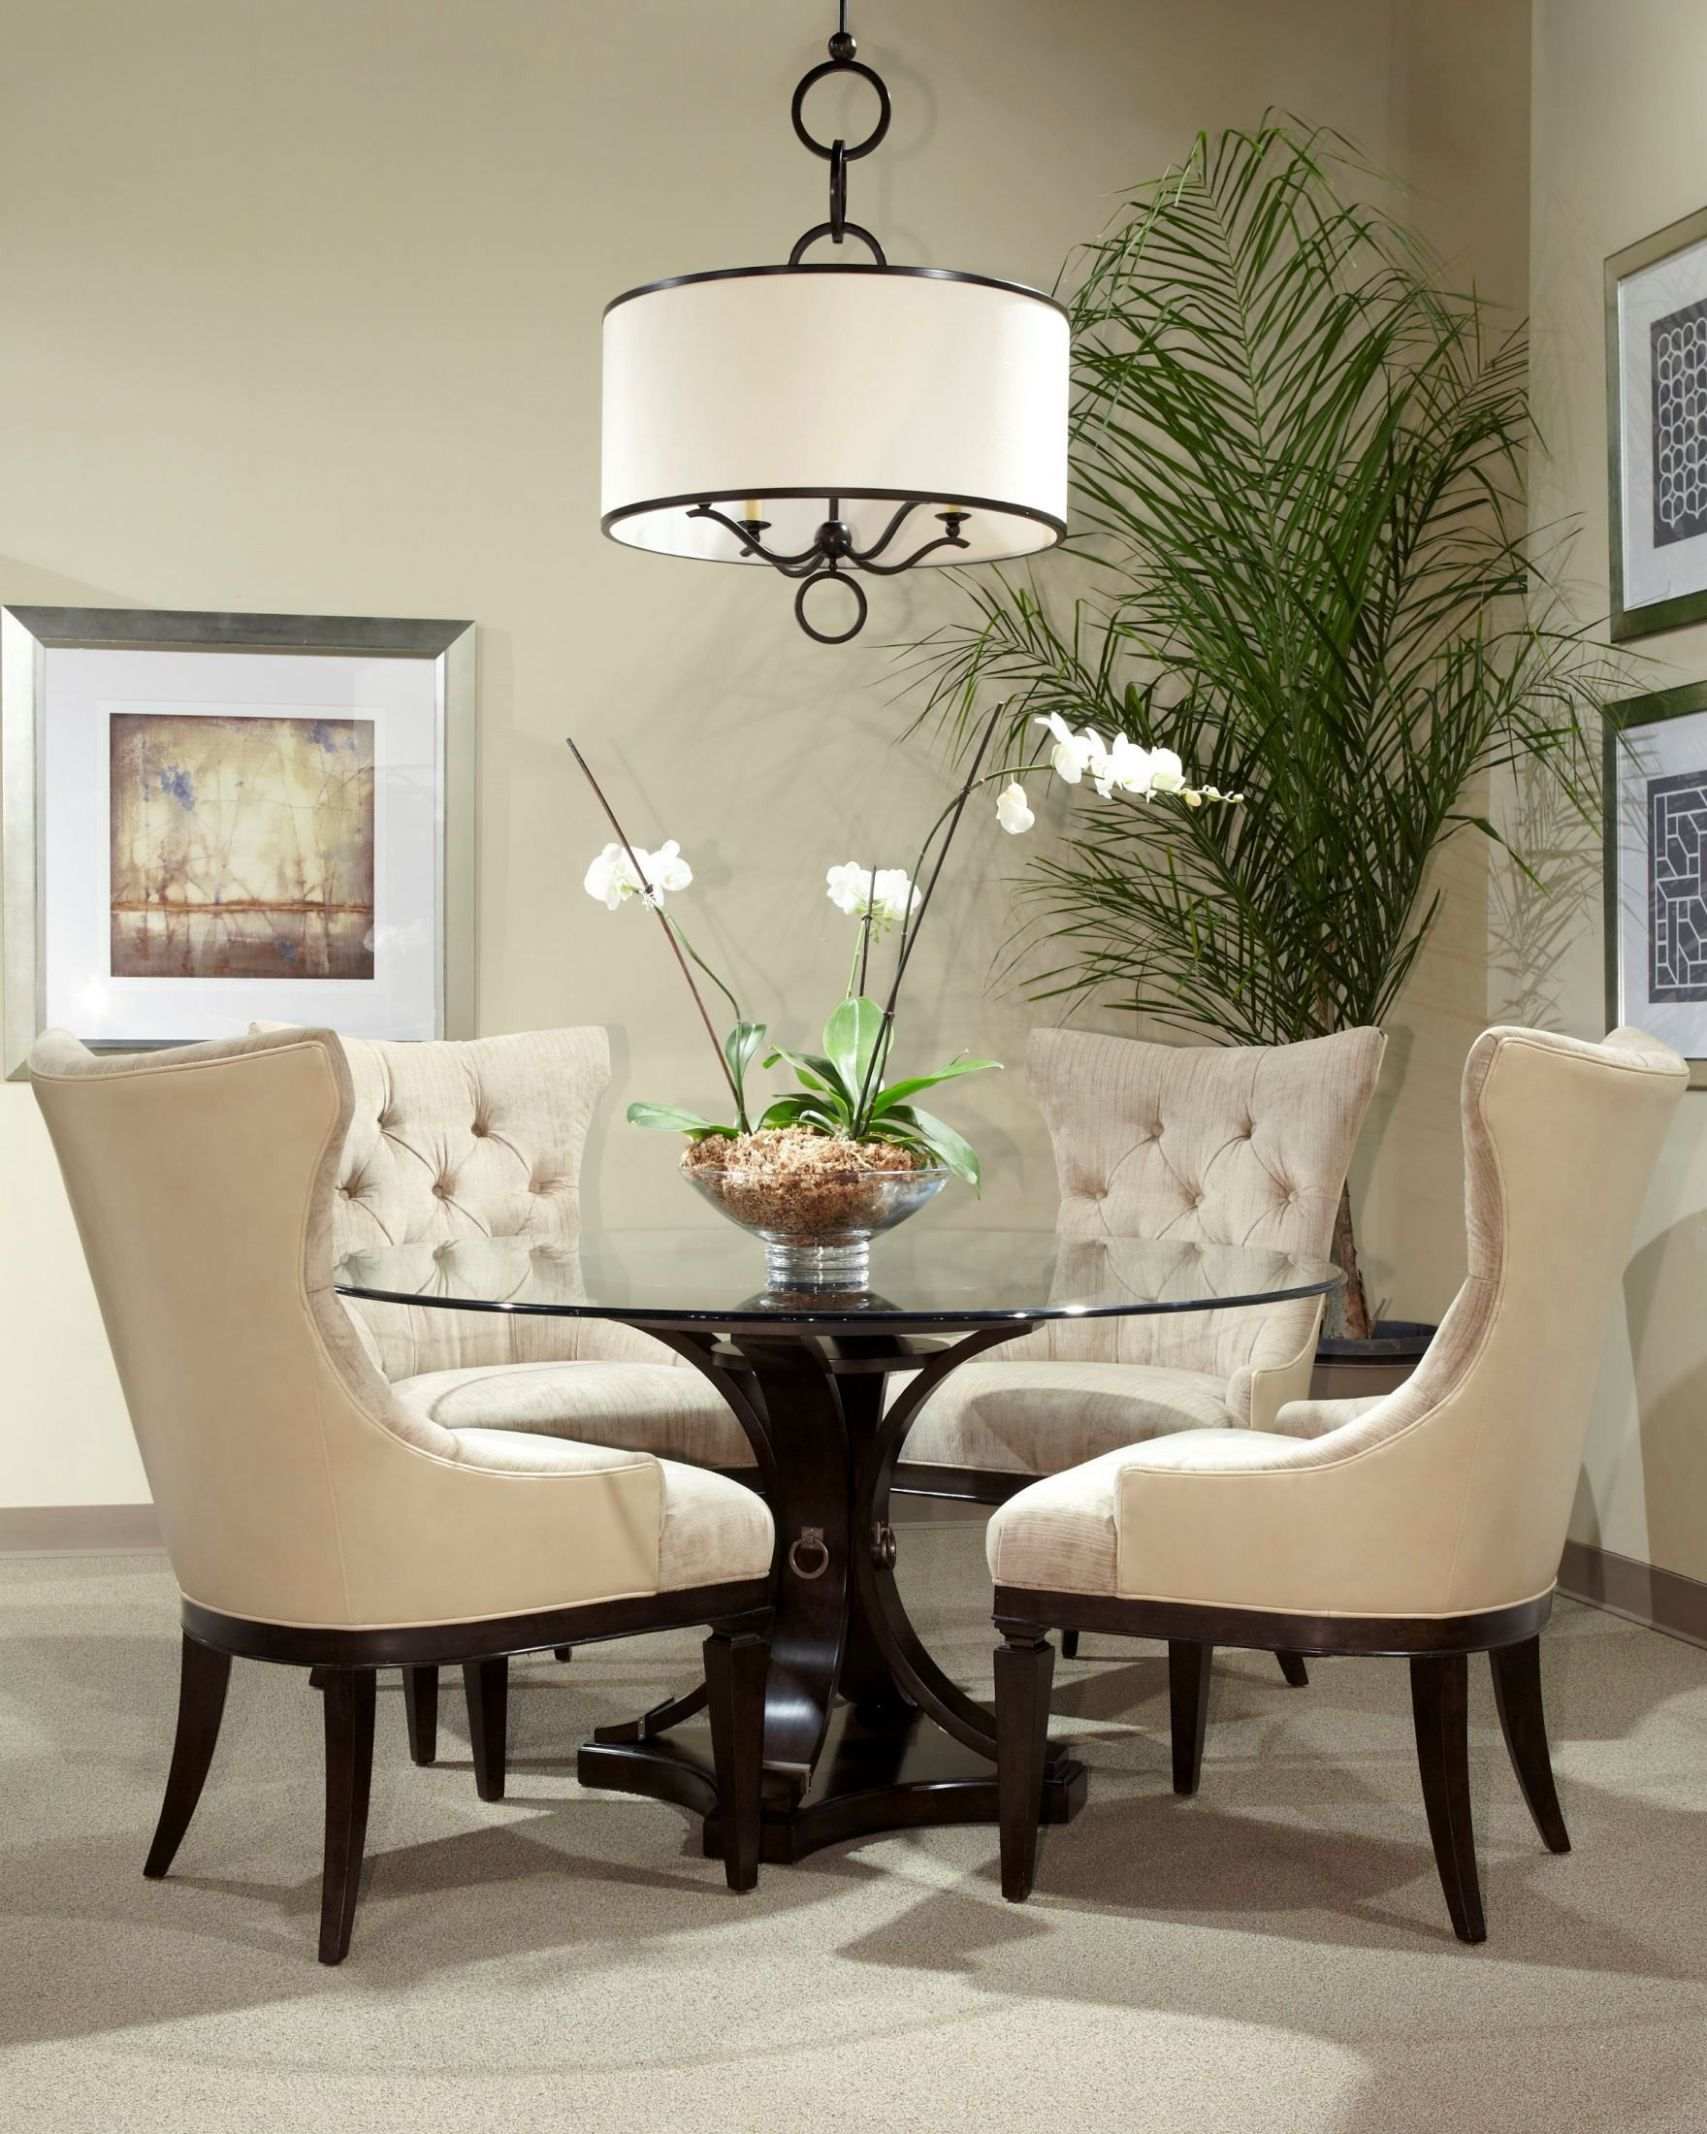 Classic Round Glass Top Dining Room Set (With images) | Round ...